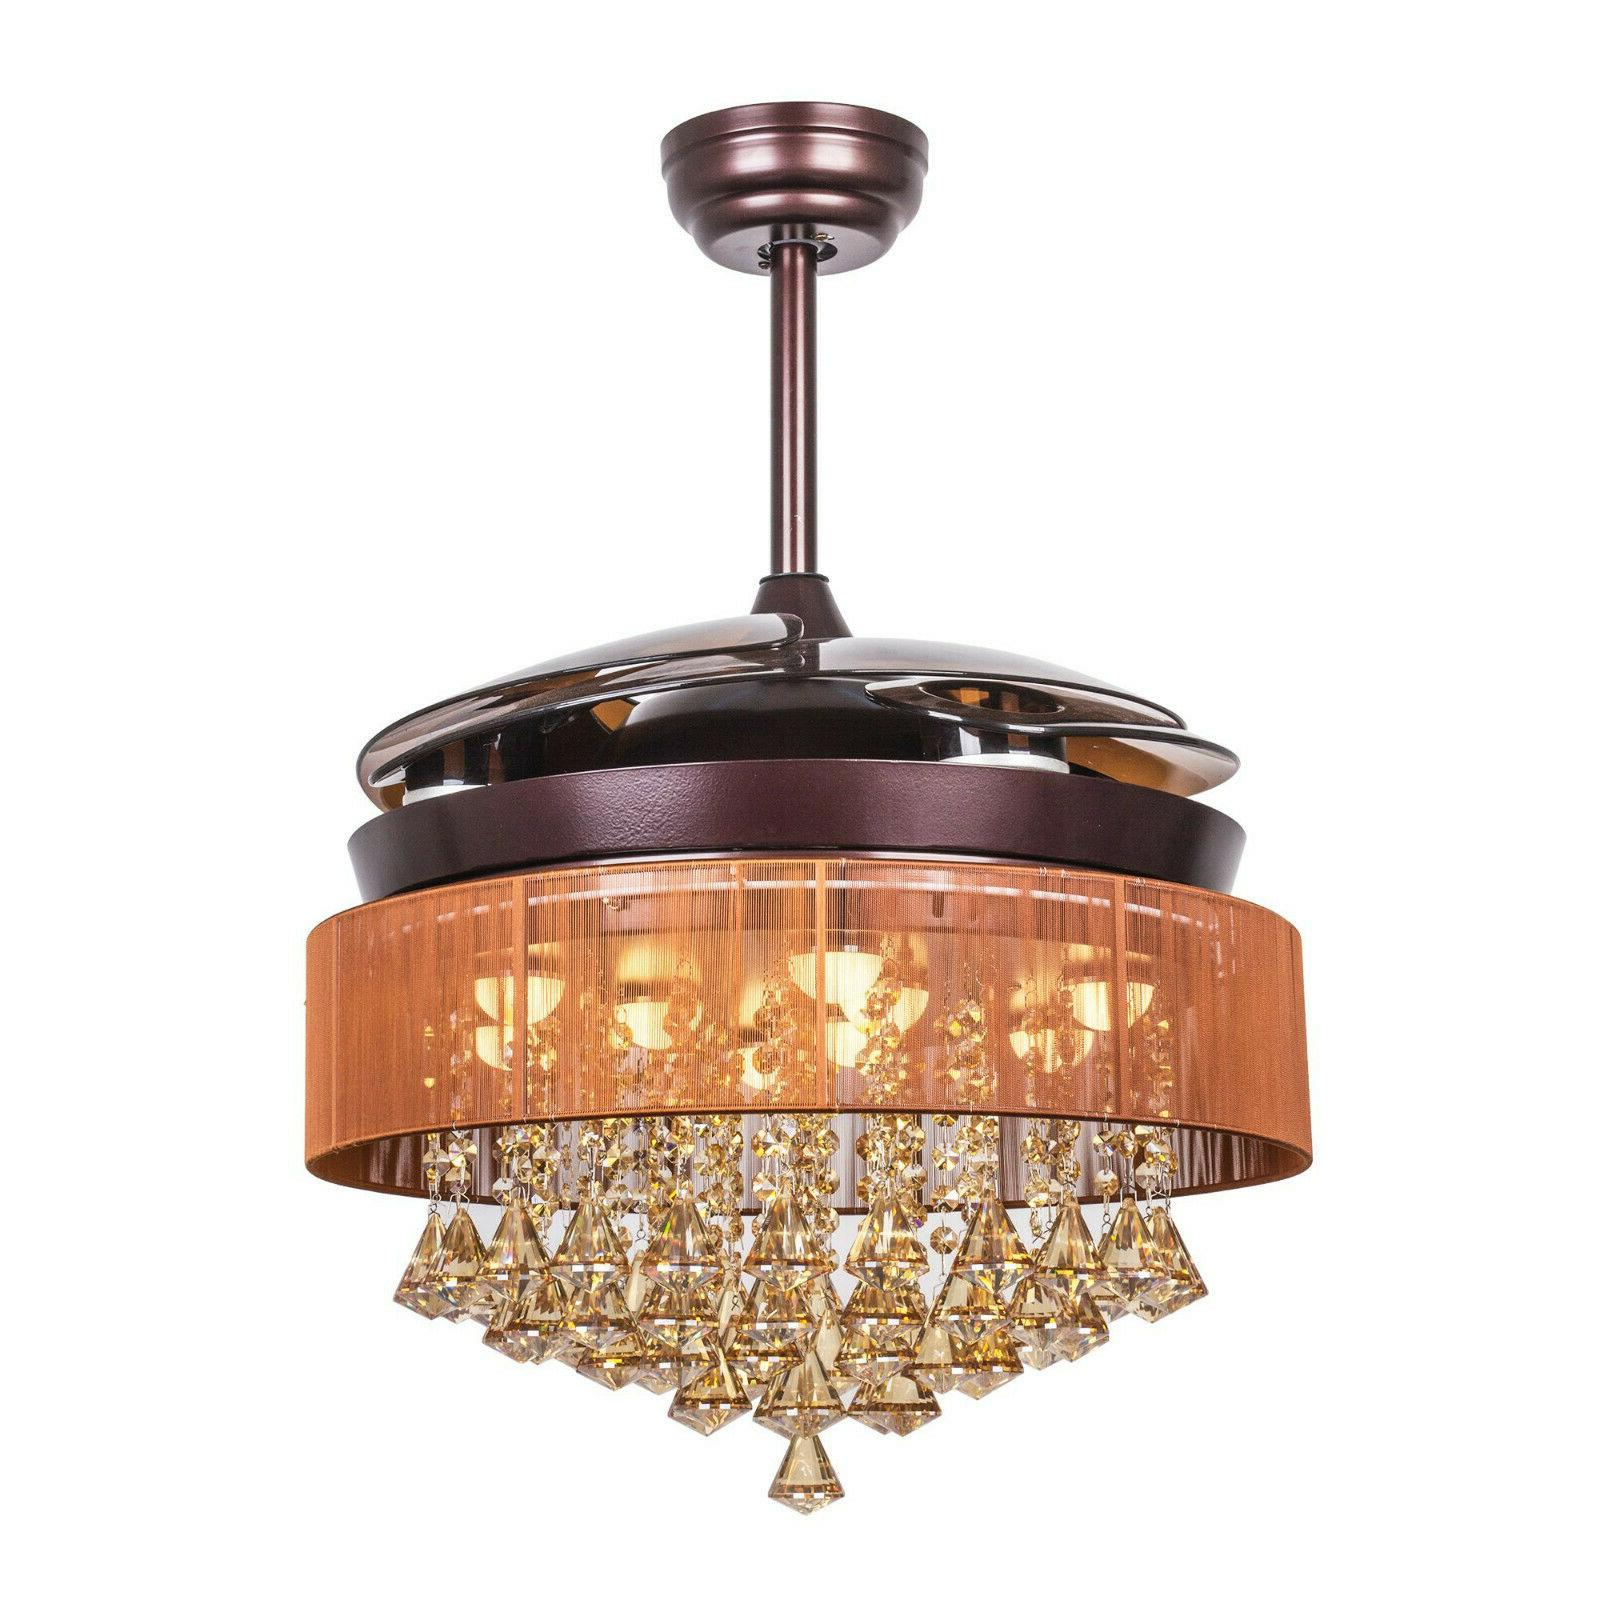 46 Crystal Chandelier Fan Remote Ceiling Fan W Led Lights Retractable Blades Mainlevel At